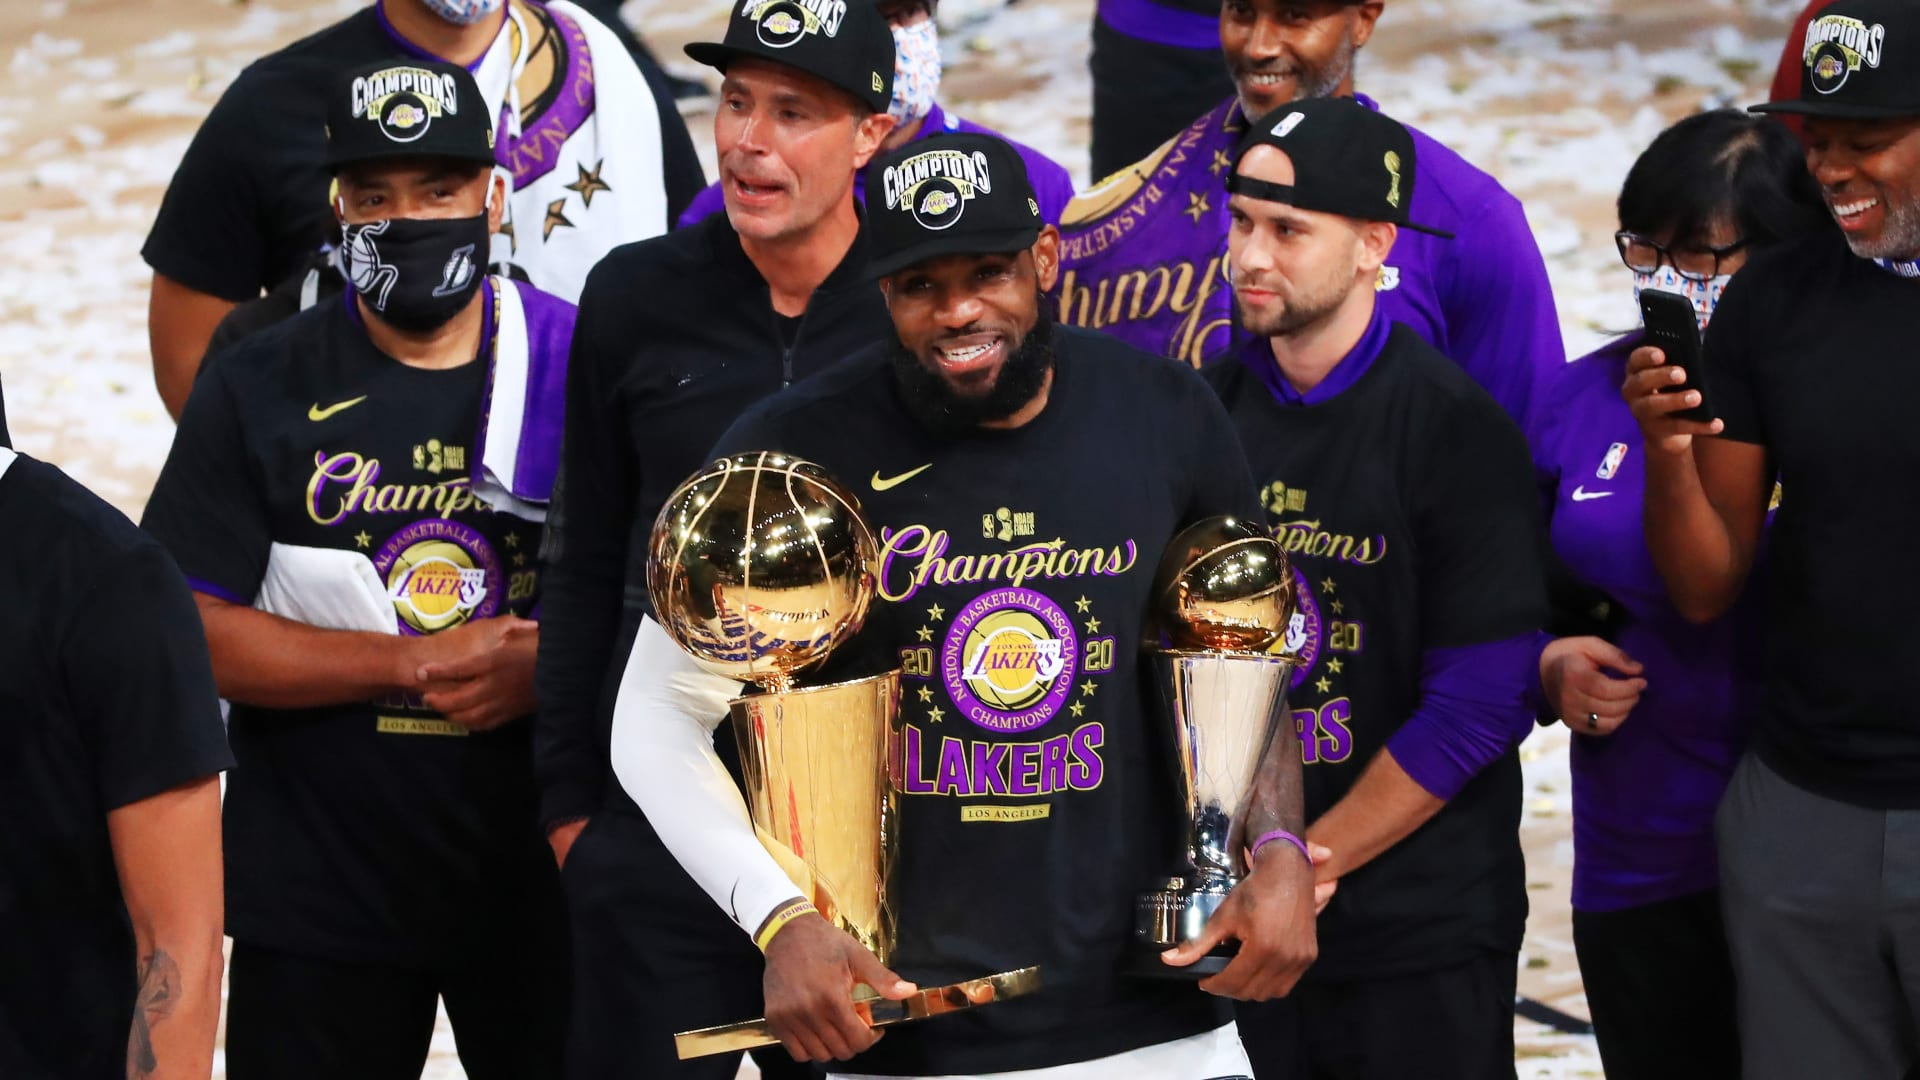 Lakers' Public Title Celebration Has to Wait Due to COVID-19